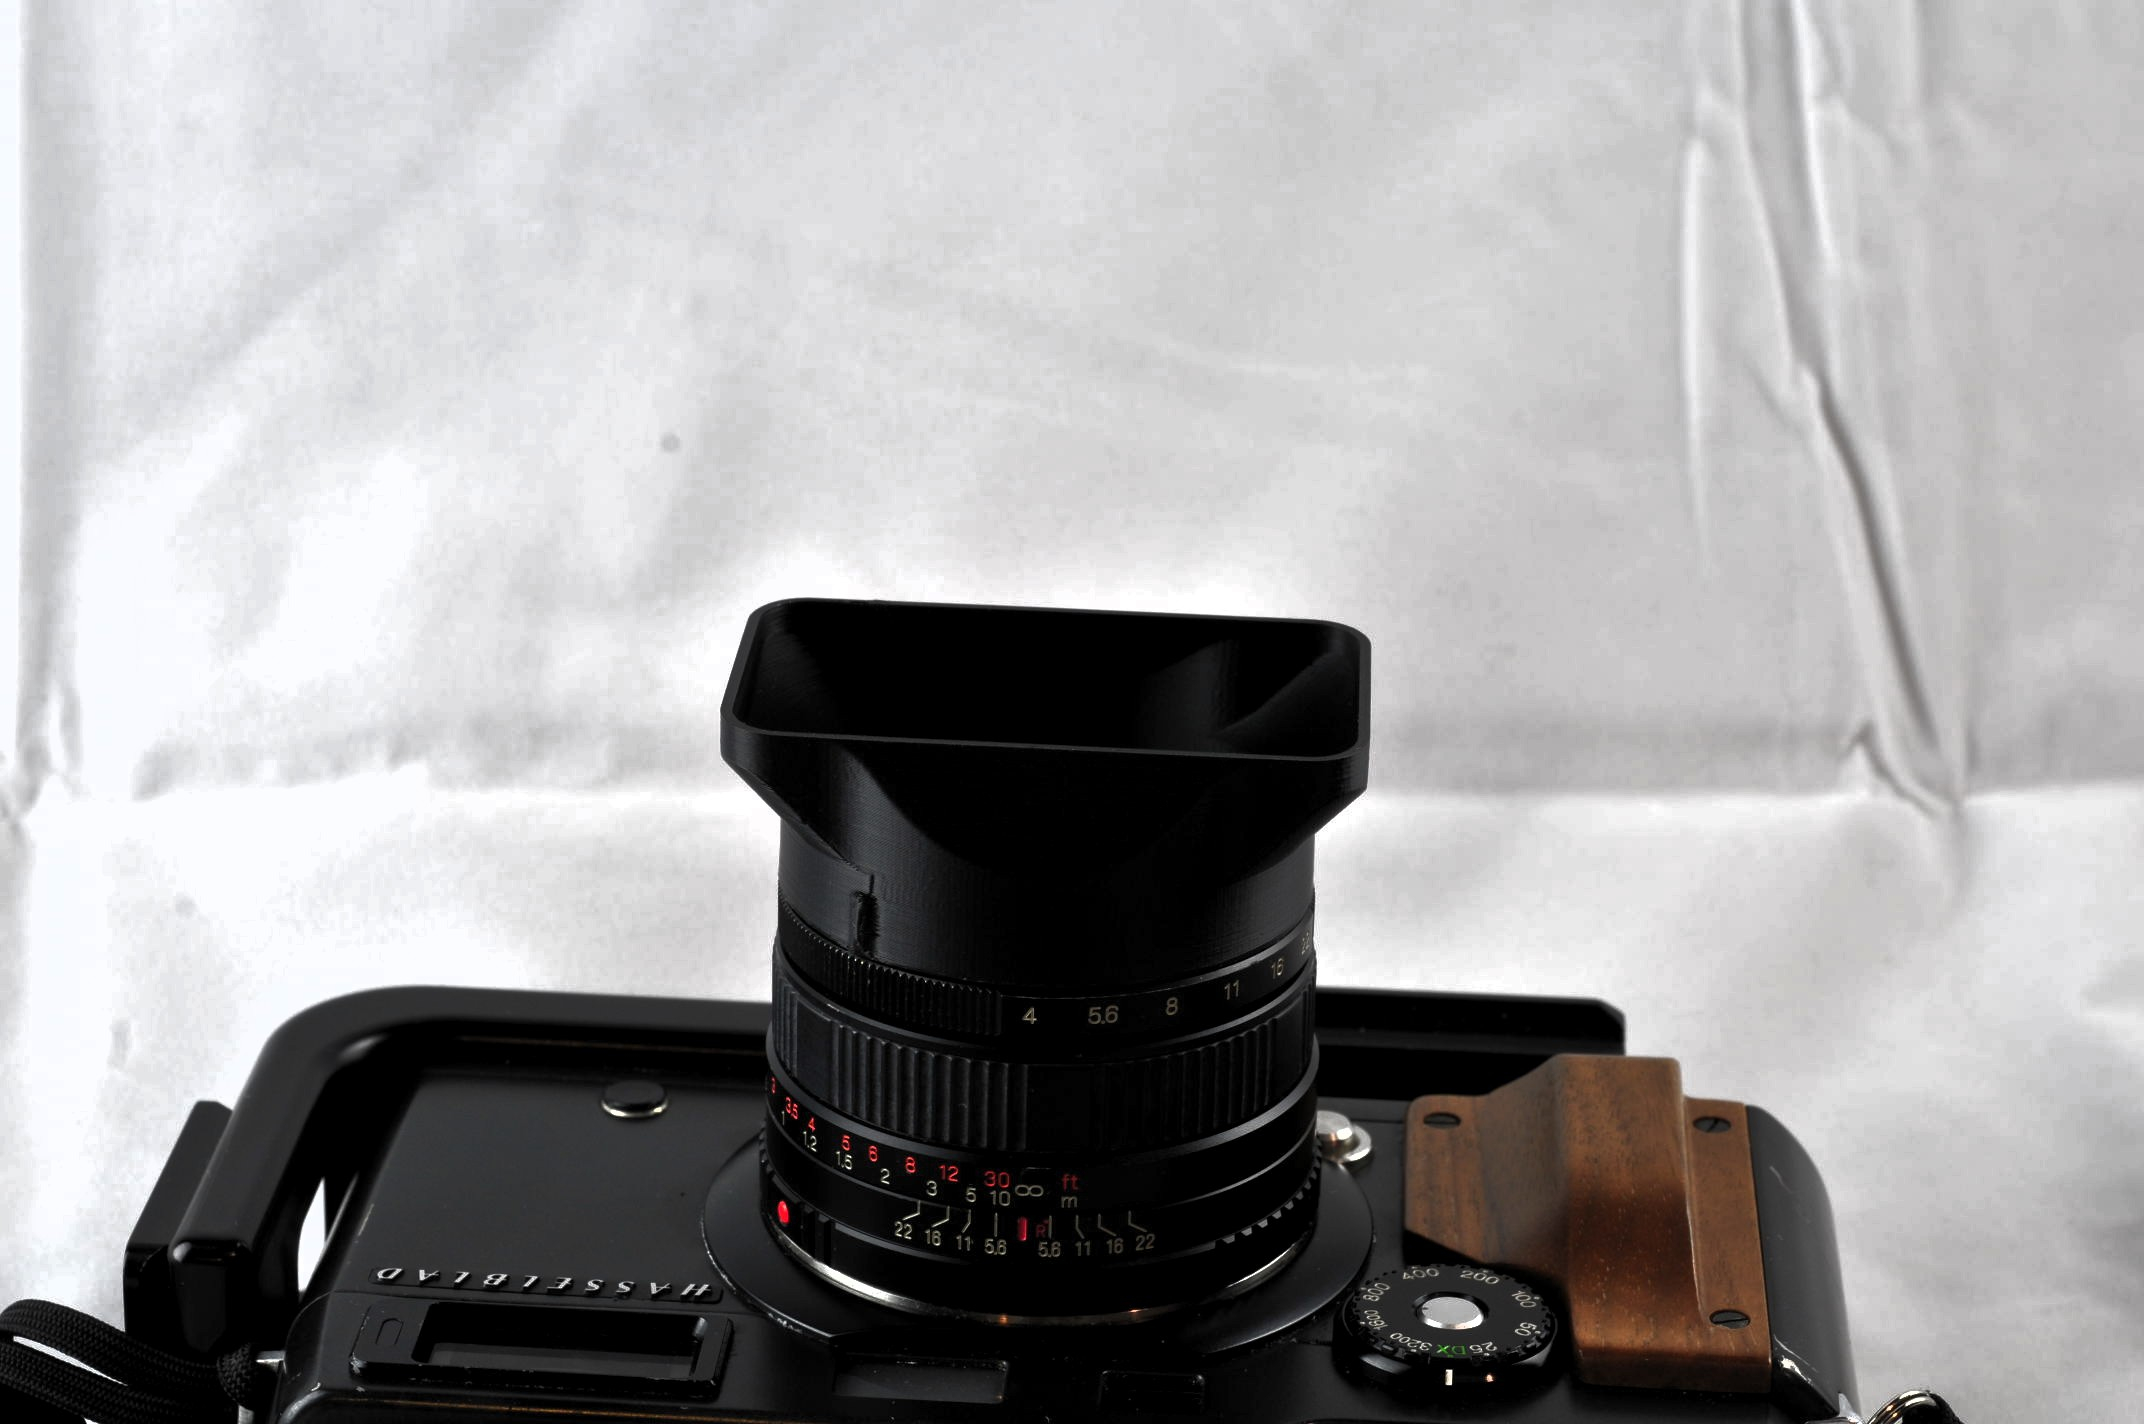 Hasselblad XPan with our reproduction lens shade.